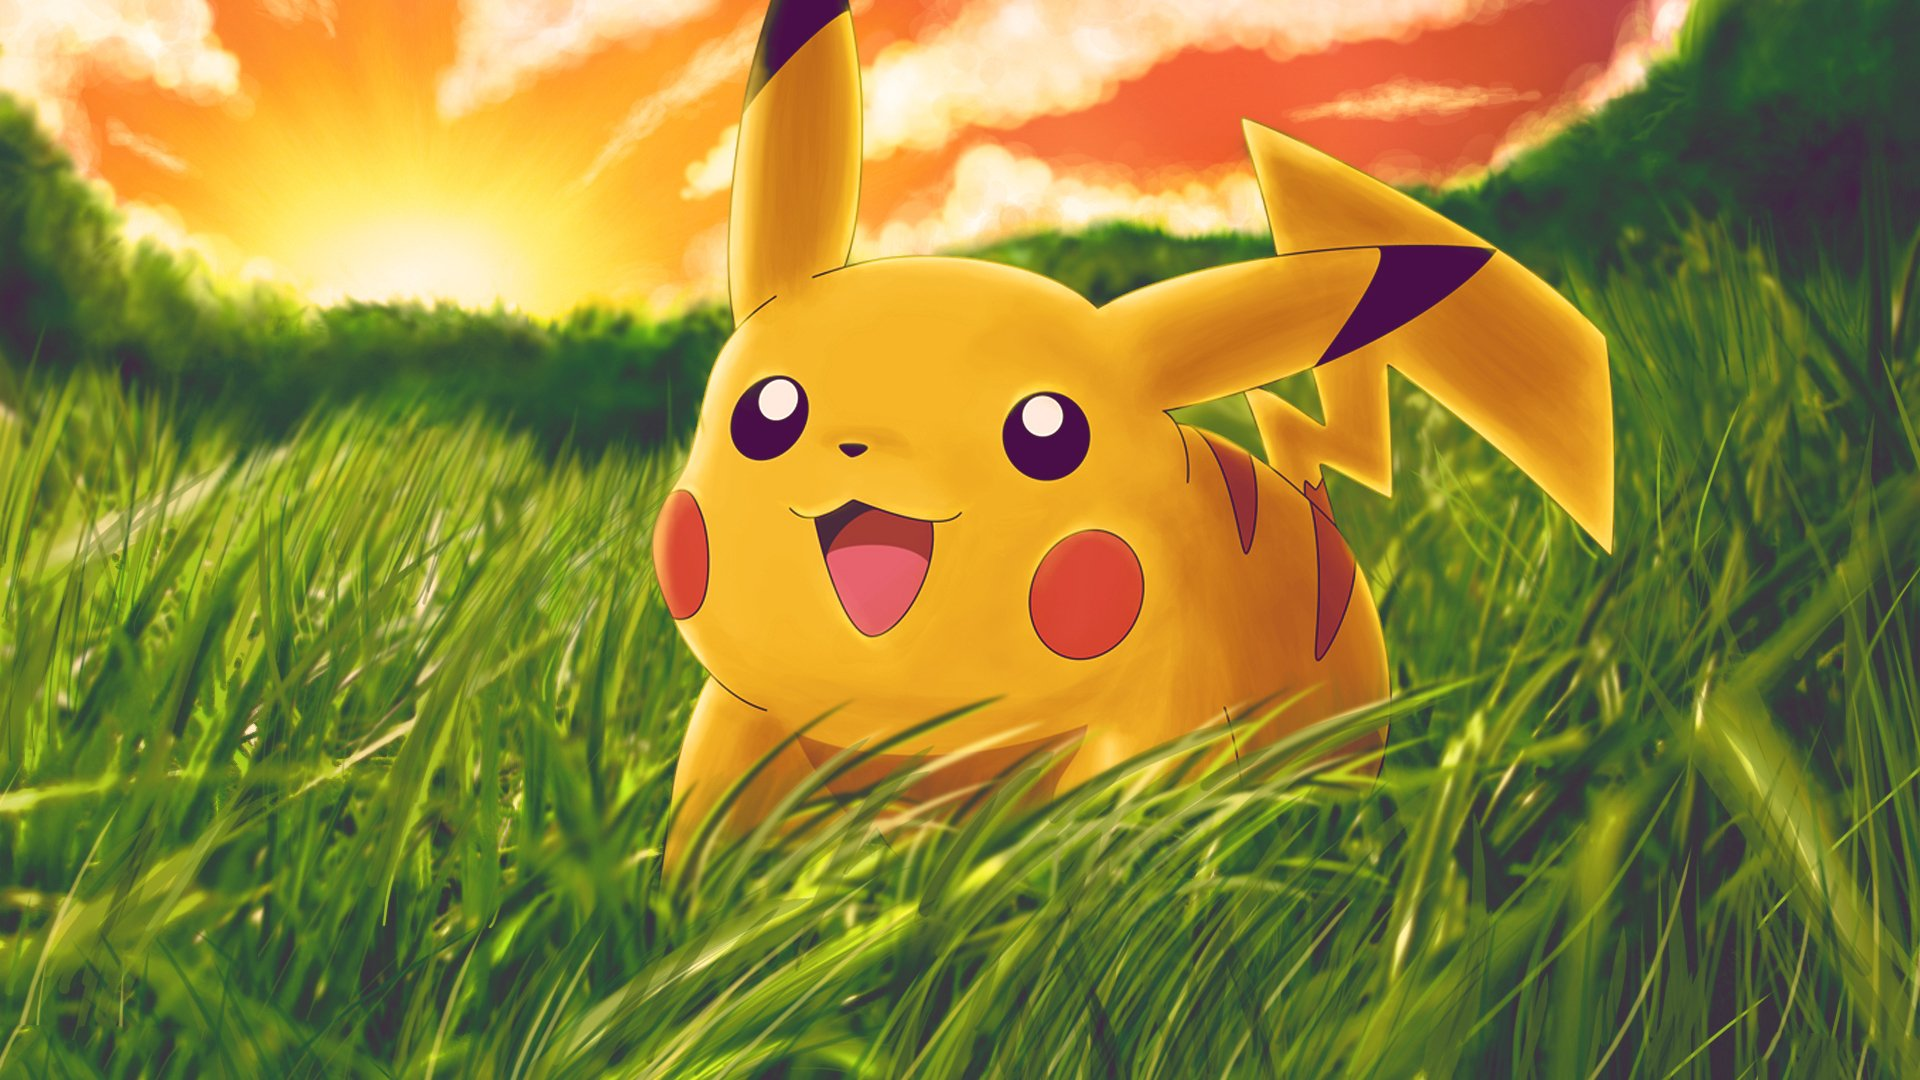 241 Pikachu HD Wallpapers